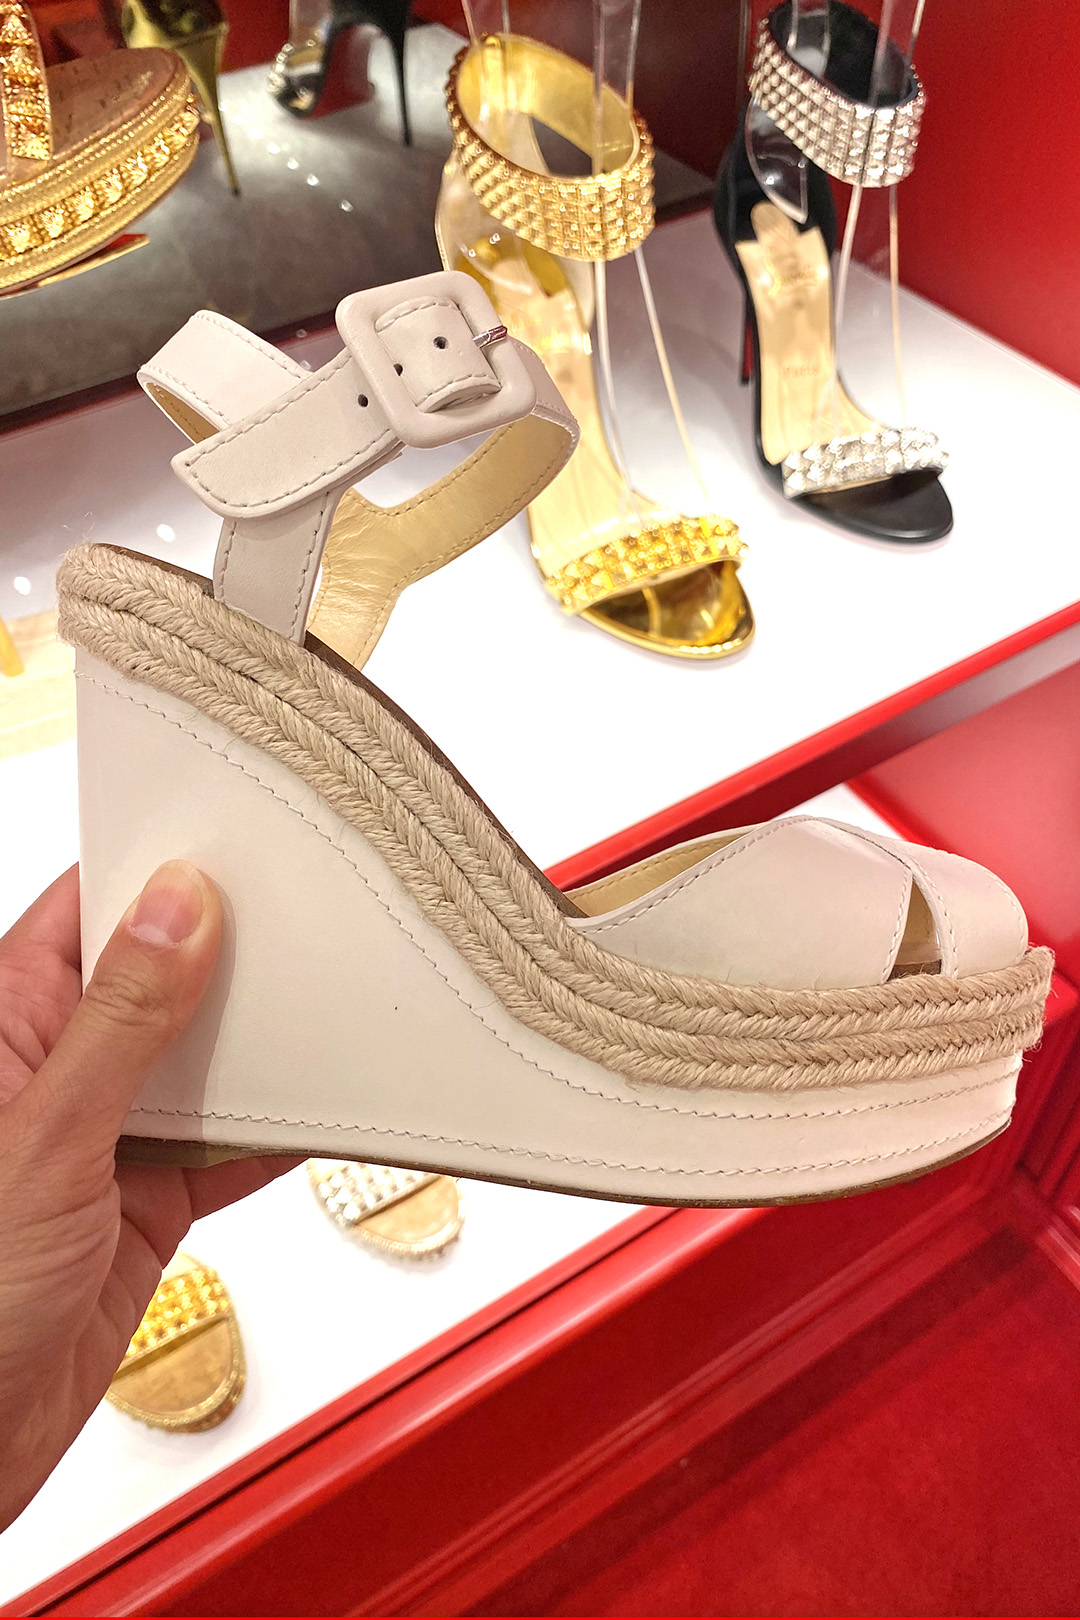 Christian Louboutin Outlet Wedges (The Luxury Lowdown Blog)